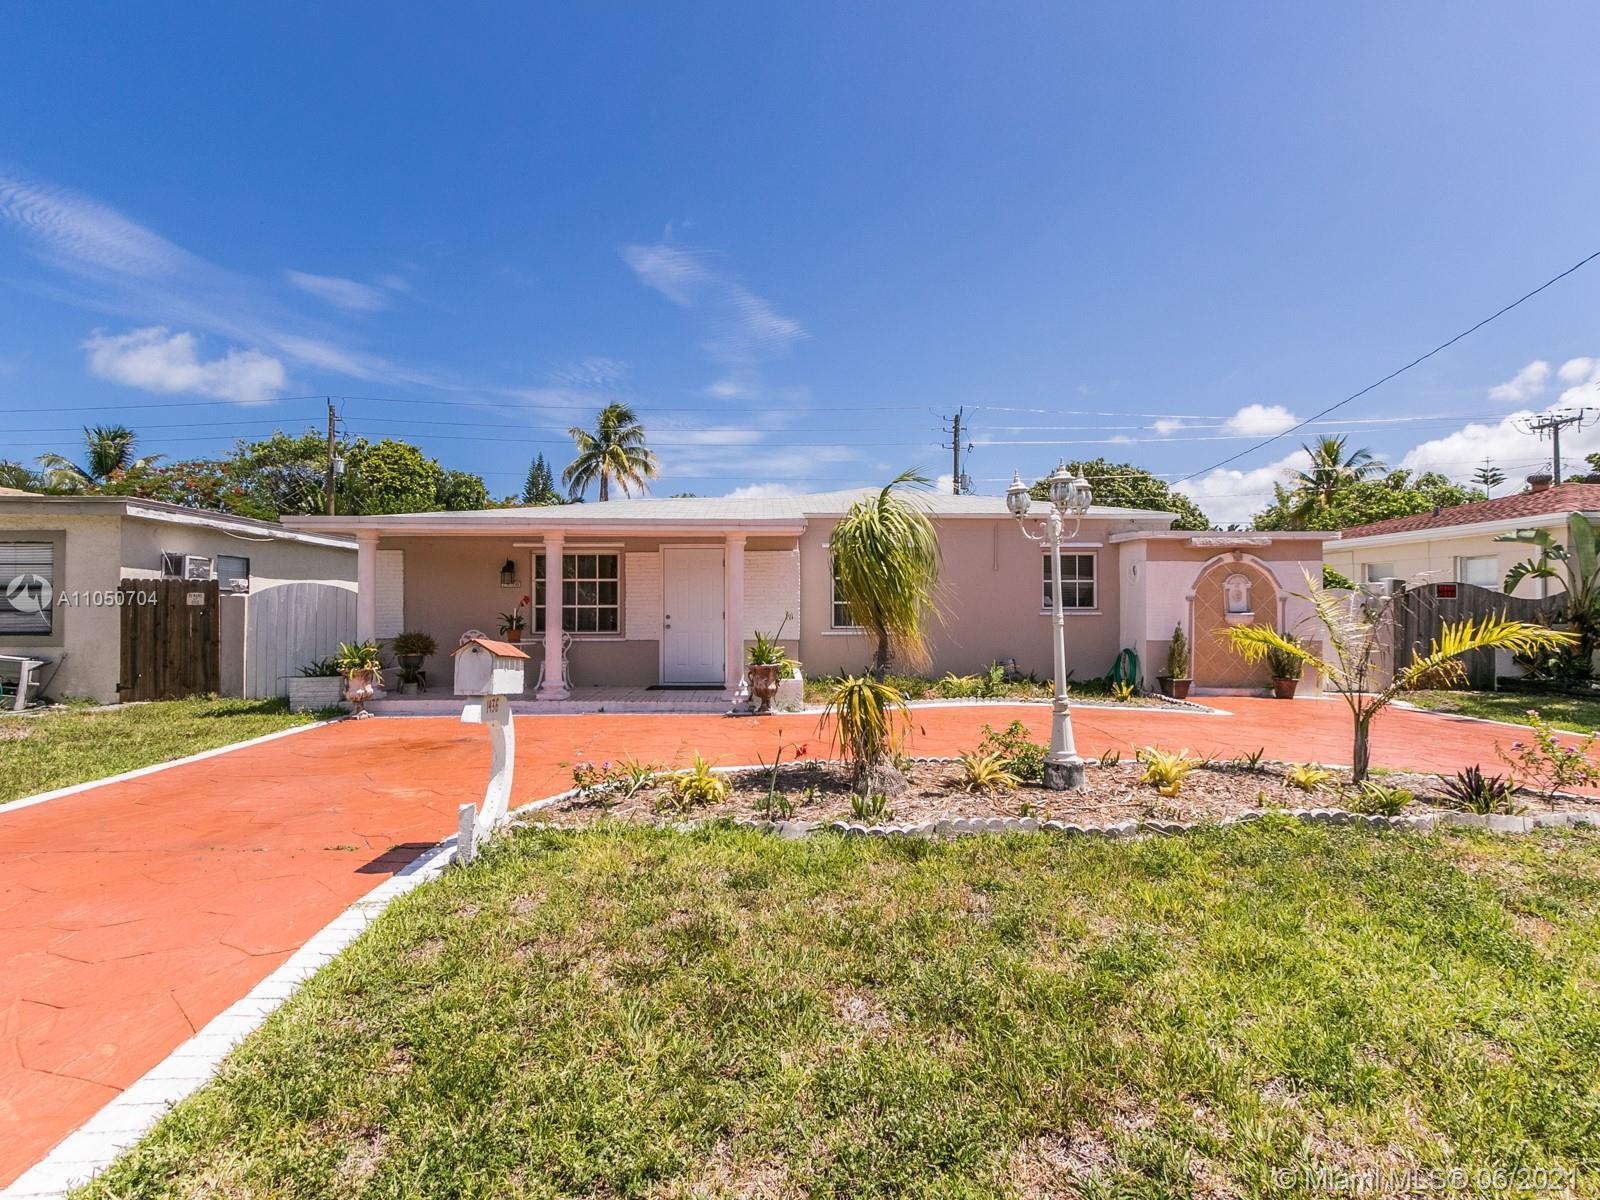 3 BEDROOM AND 3 FULL BATHROOM, 1,658 SQUARE FEET OF LIVING AREA, 8,131 SQUARE FOOT LOT, NEWER ROOF 2